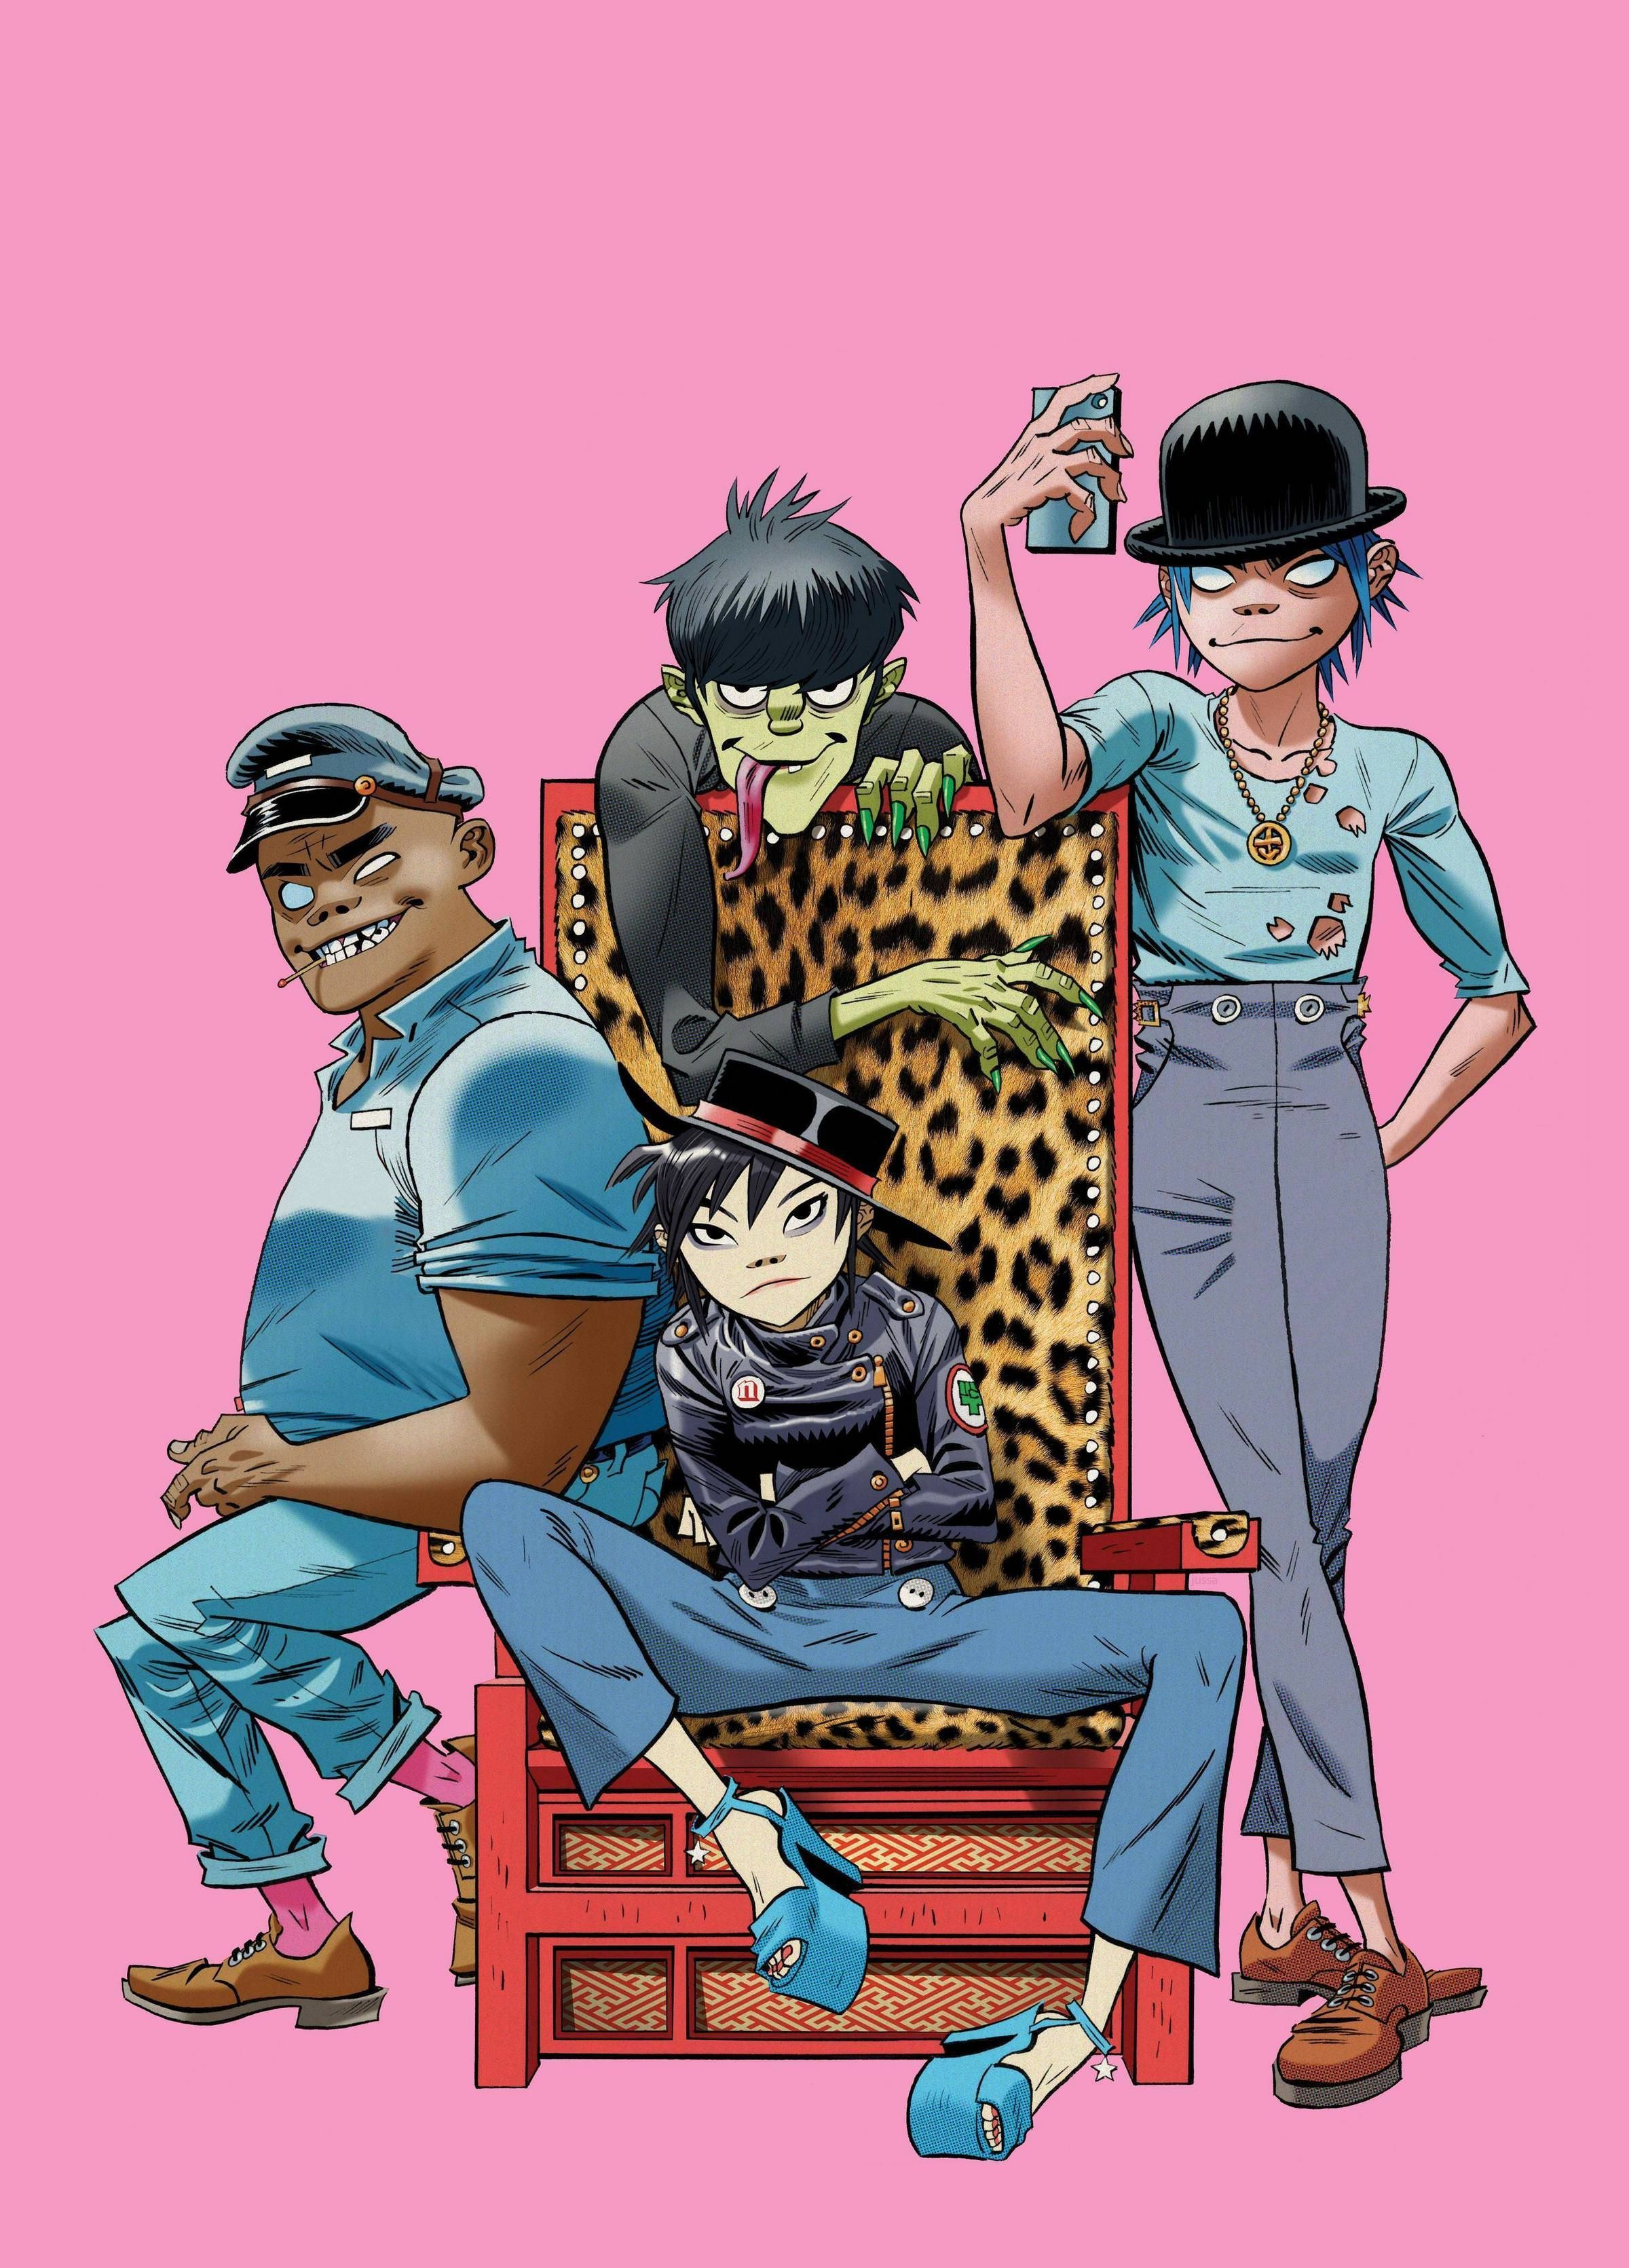 Gorillaz Phase 4 - Year of Clean Water